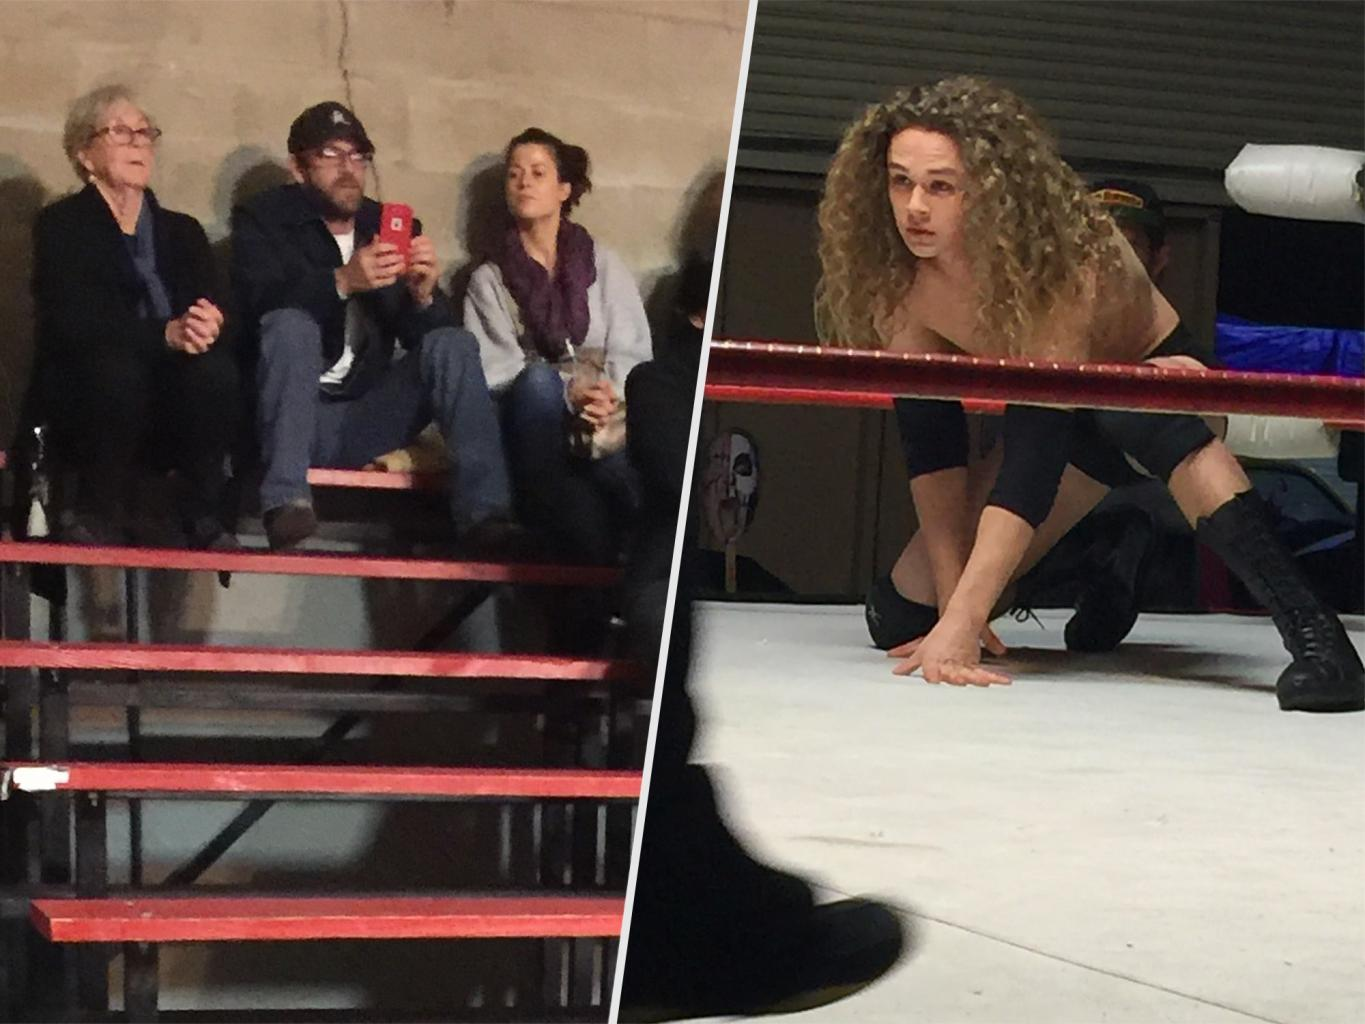 Luke Perry Attends Local Wrestling Event to Support His Son